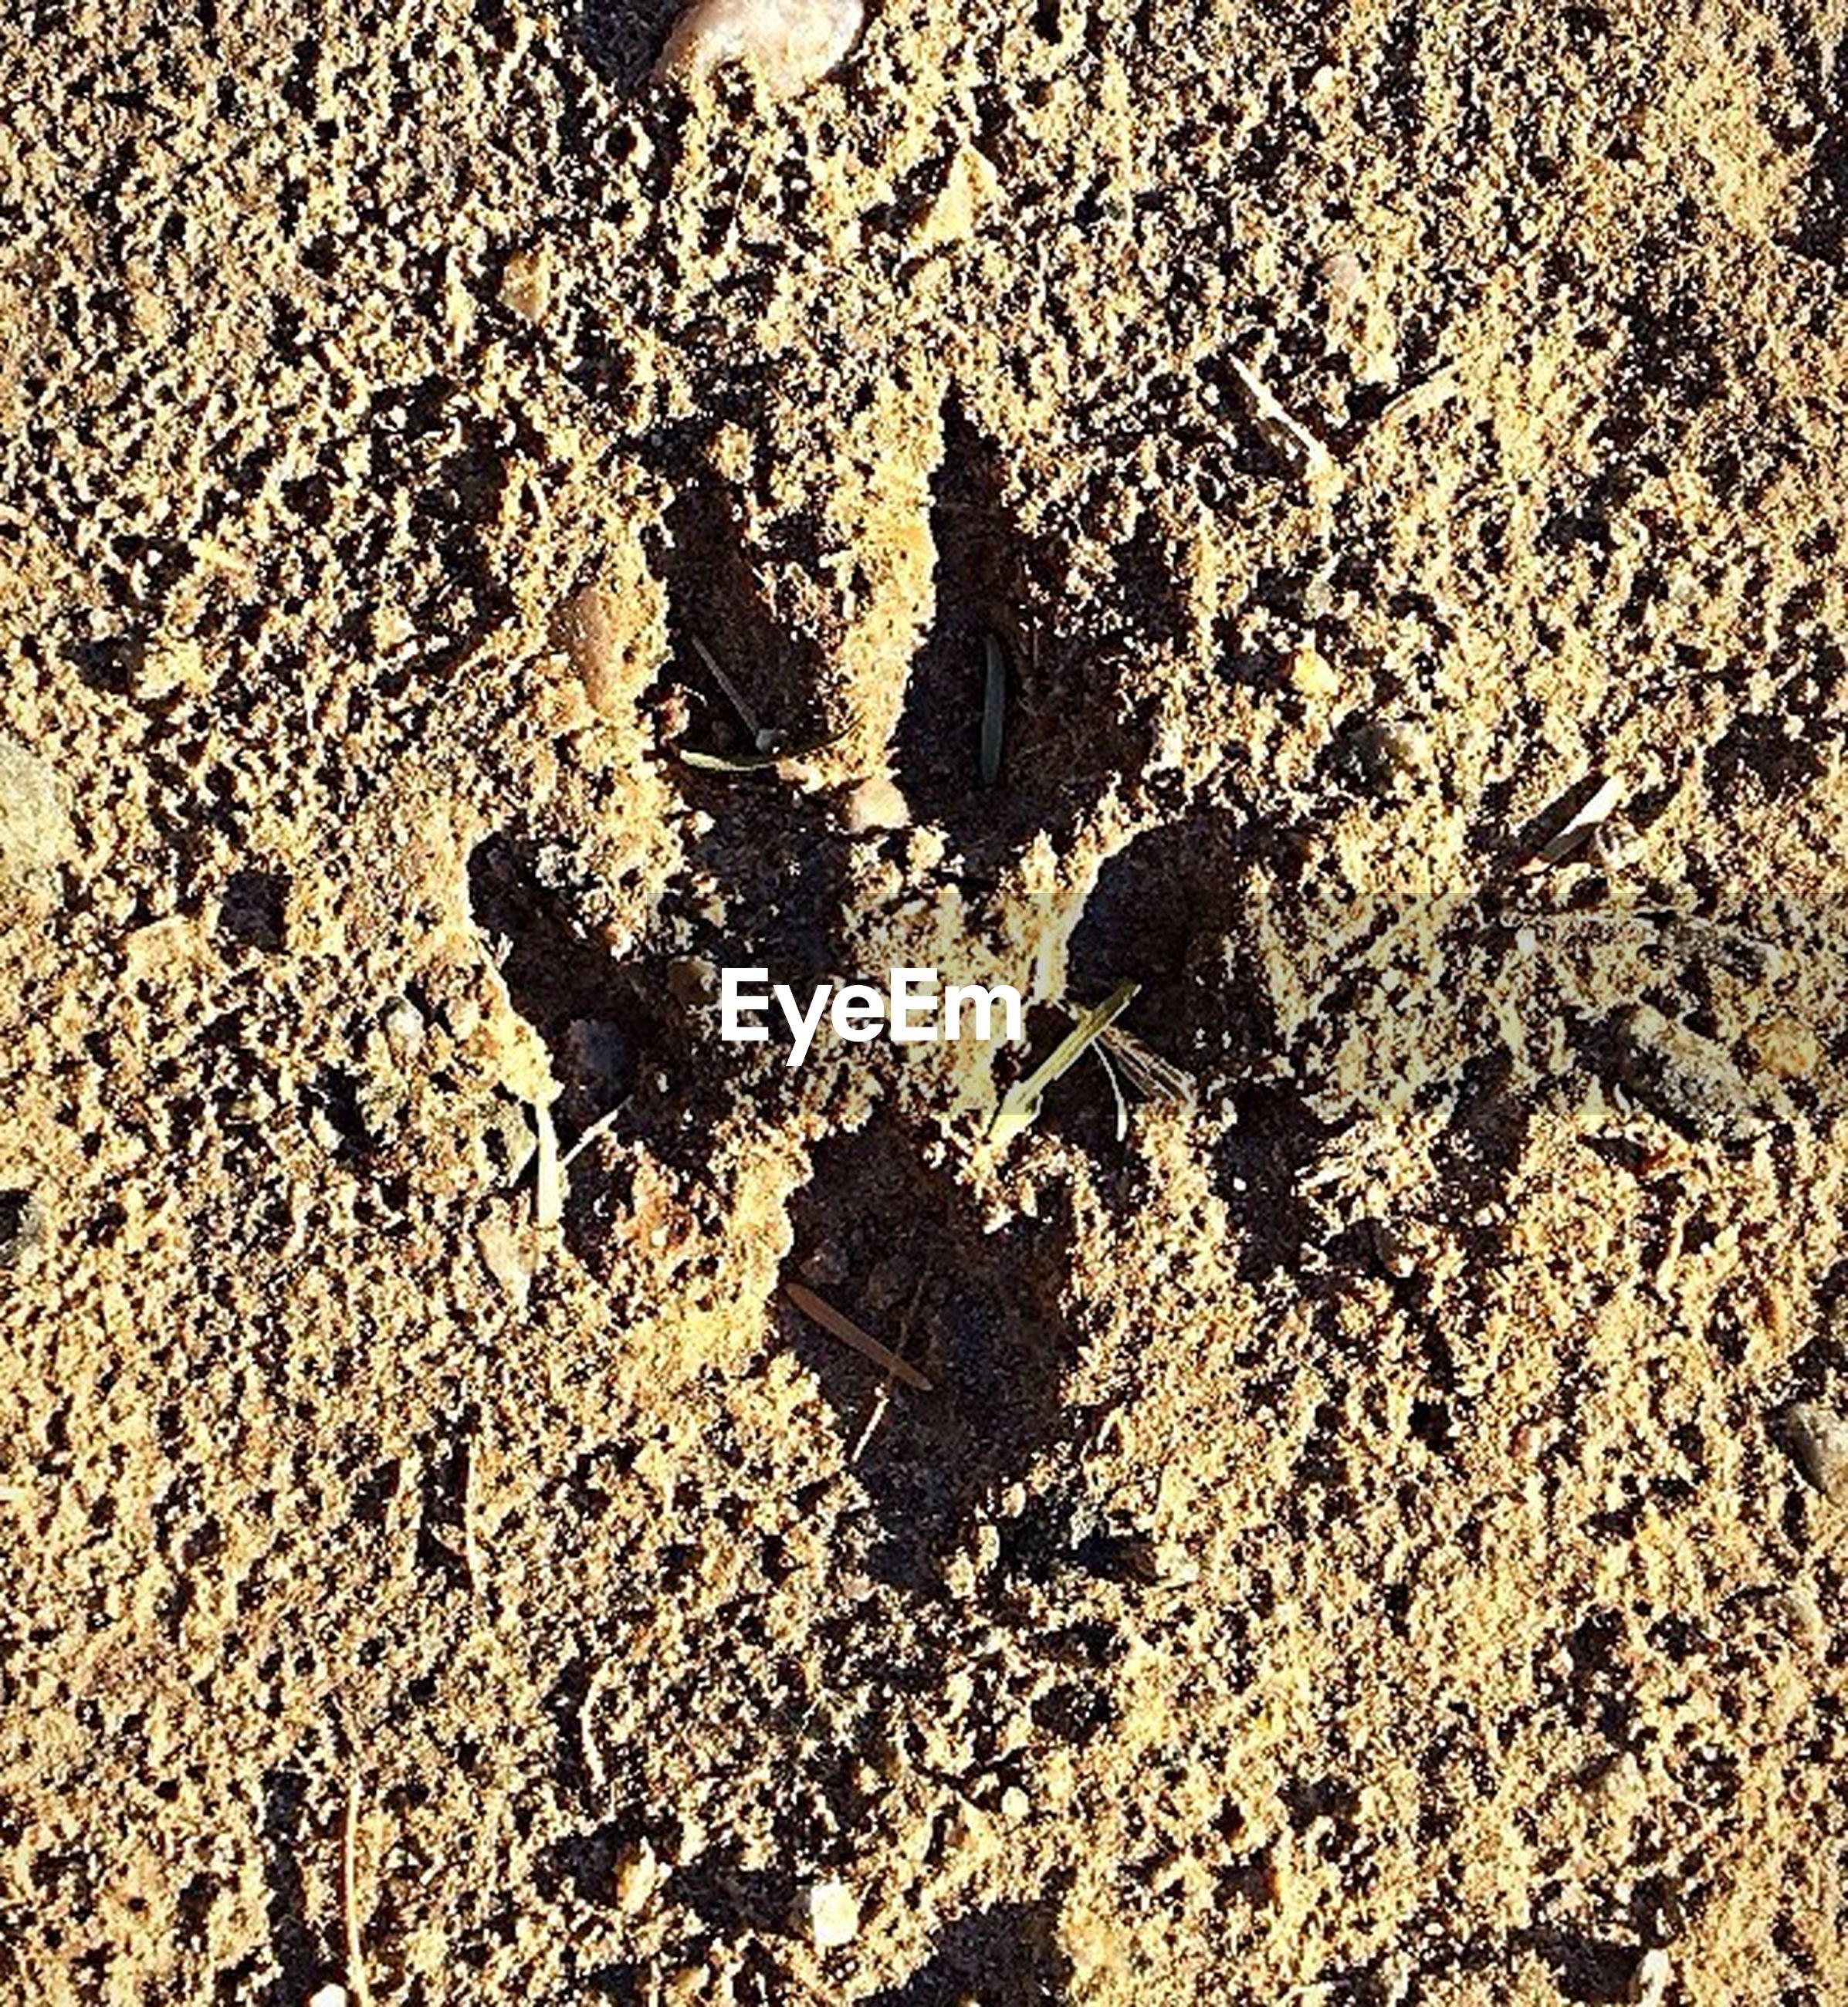 high angle view, nature, no people, day, sand, land, full frame, sunlight, beach, close-up, outdoors, pattern, paw print, textured, footprint, backgrounds, field, animal themes, creativity, animal